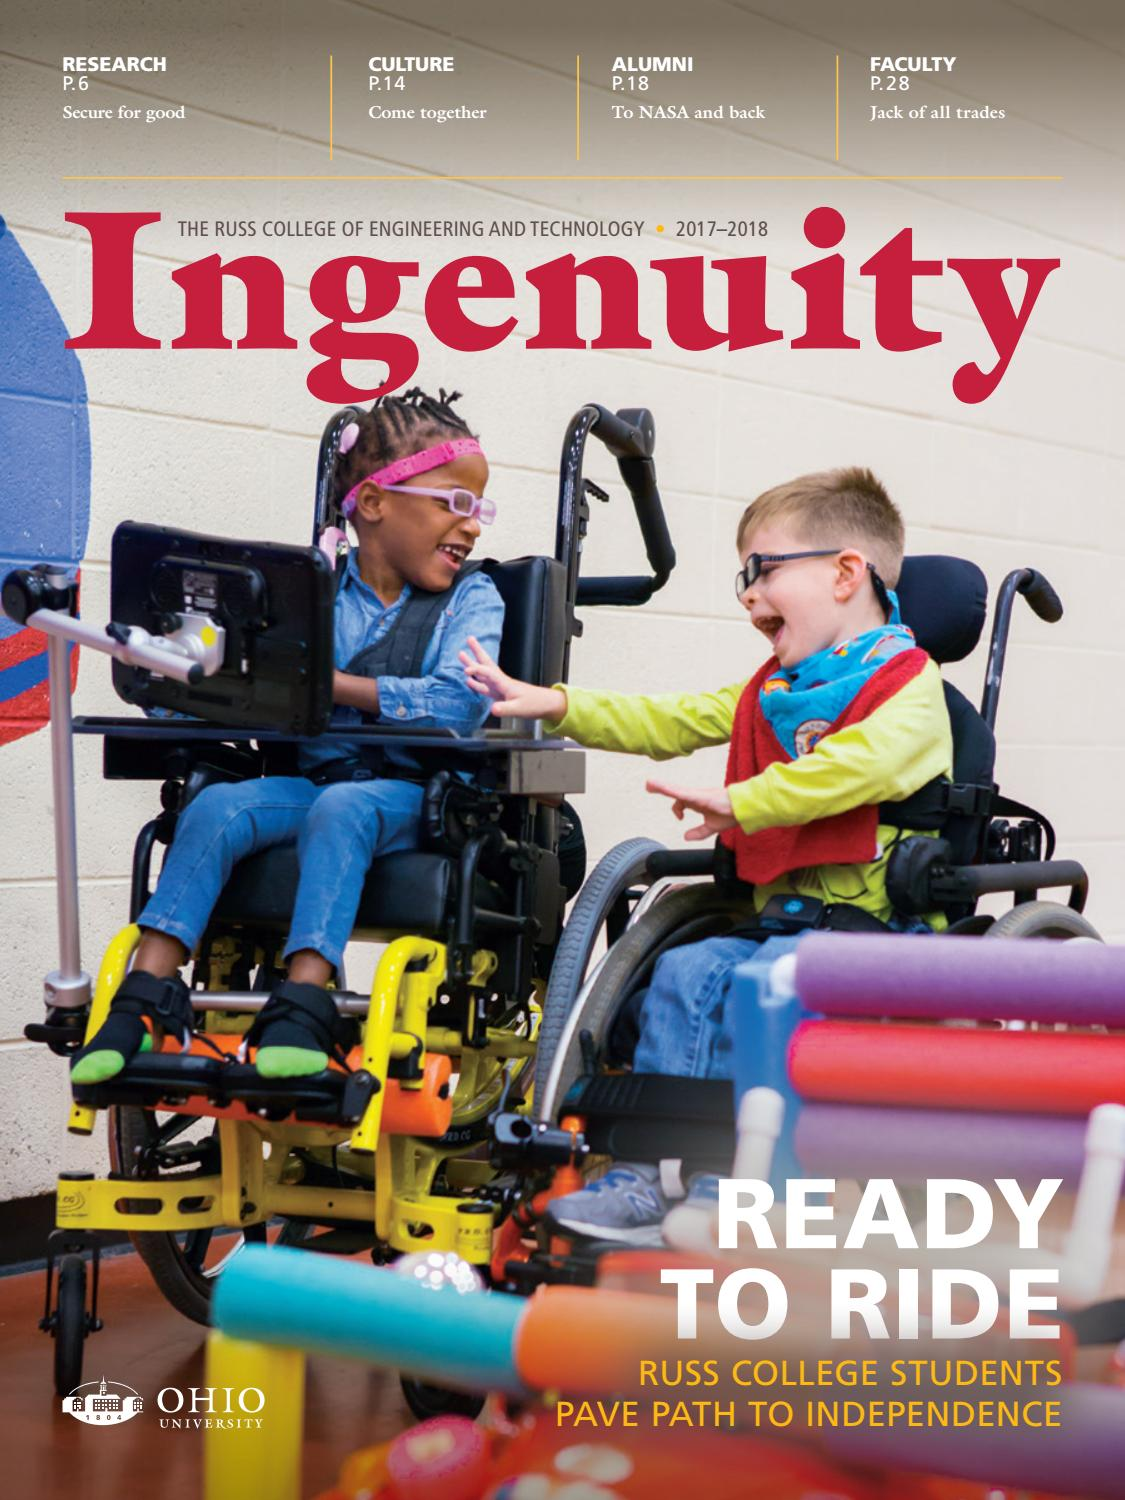 Therapeutic games for children: develop ingenuity and ingenuity